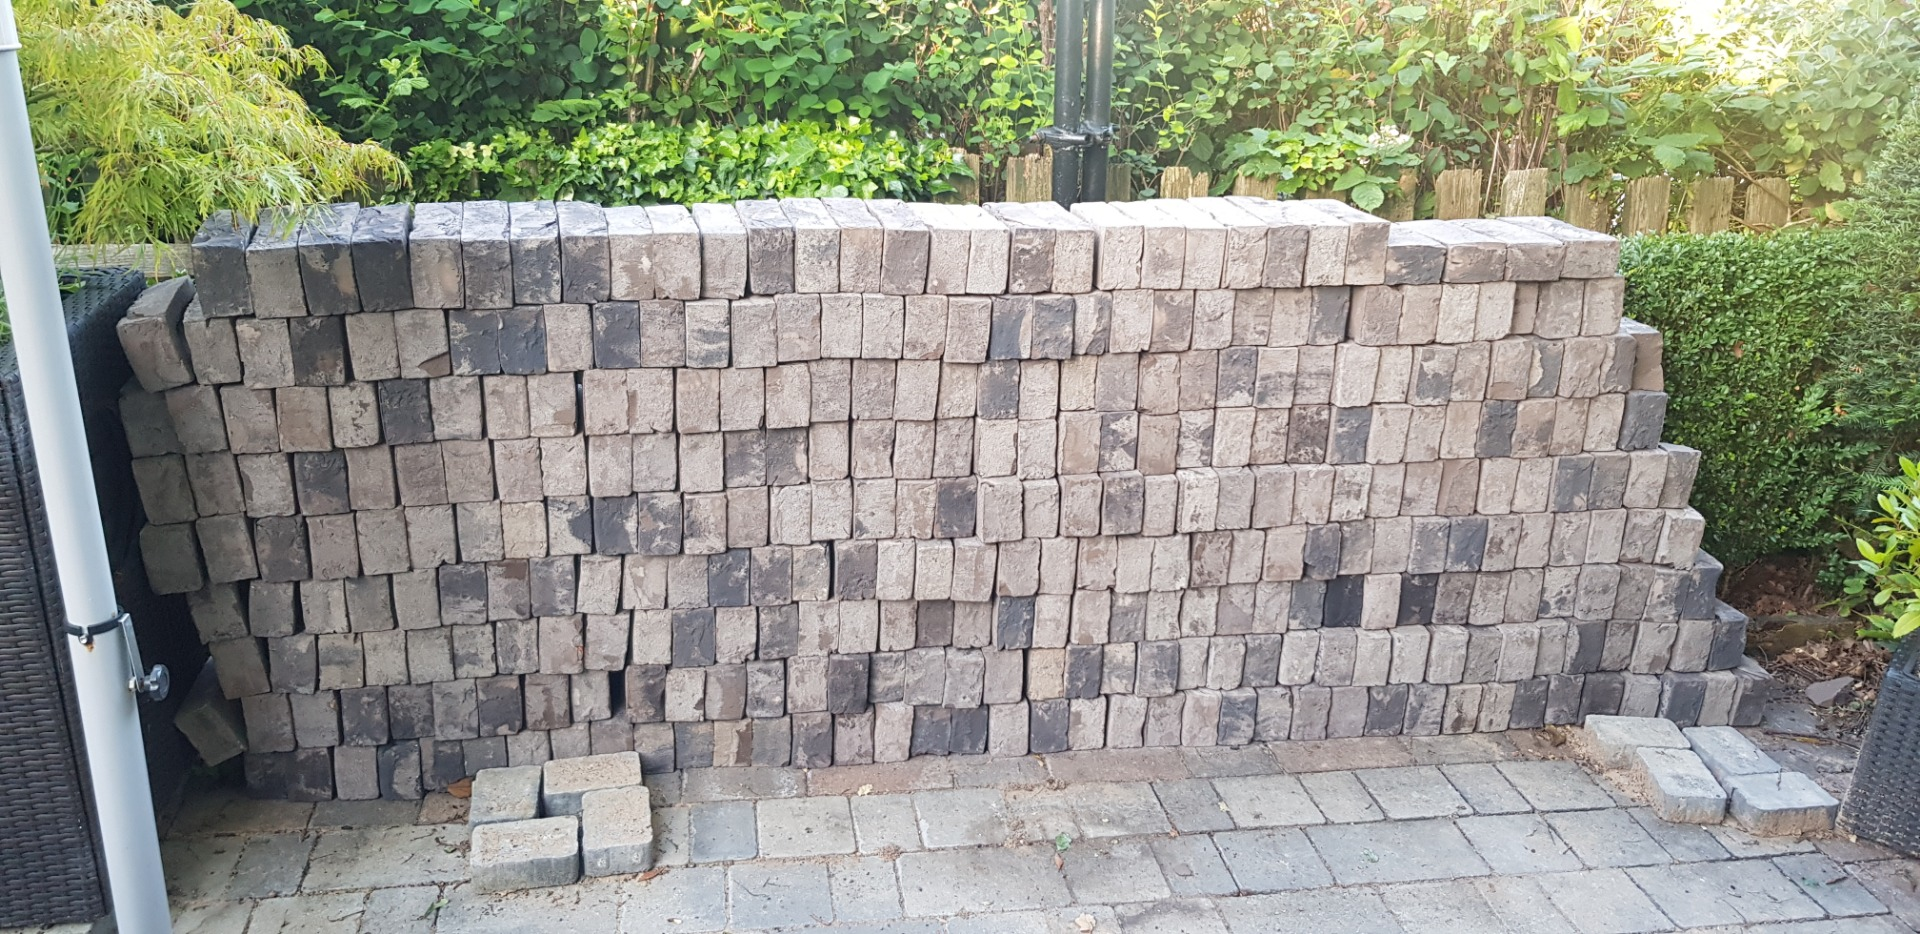 320 Cinder Coal Bricks